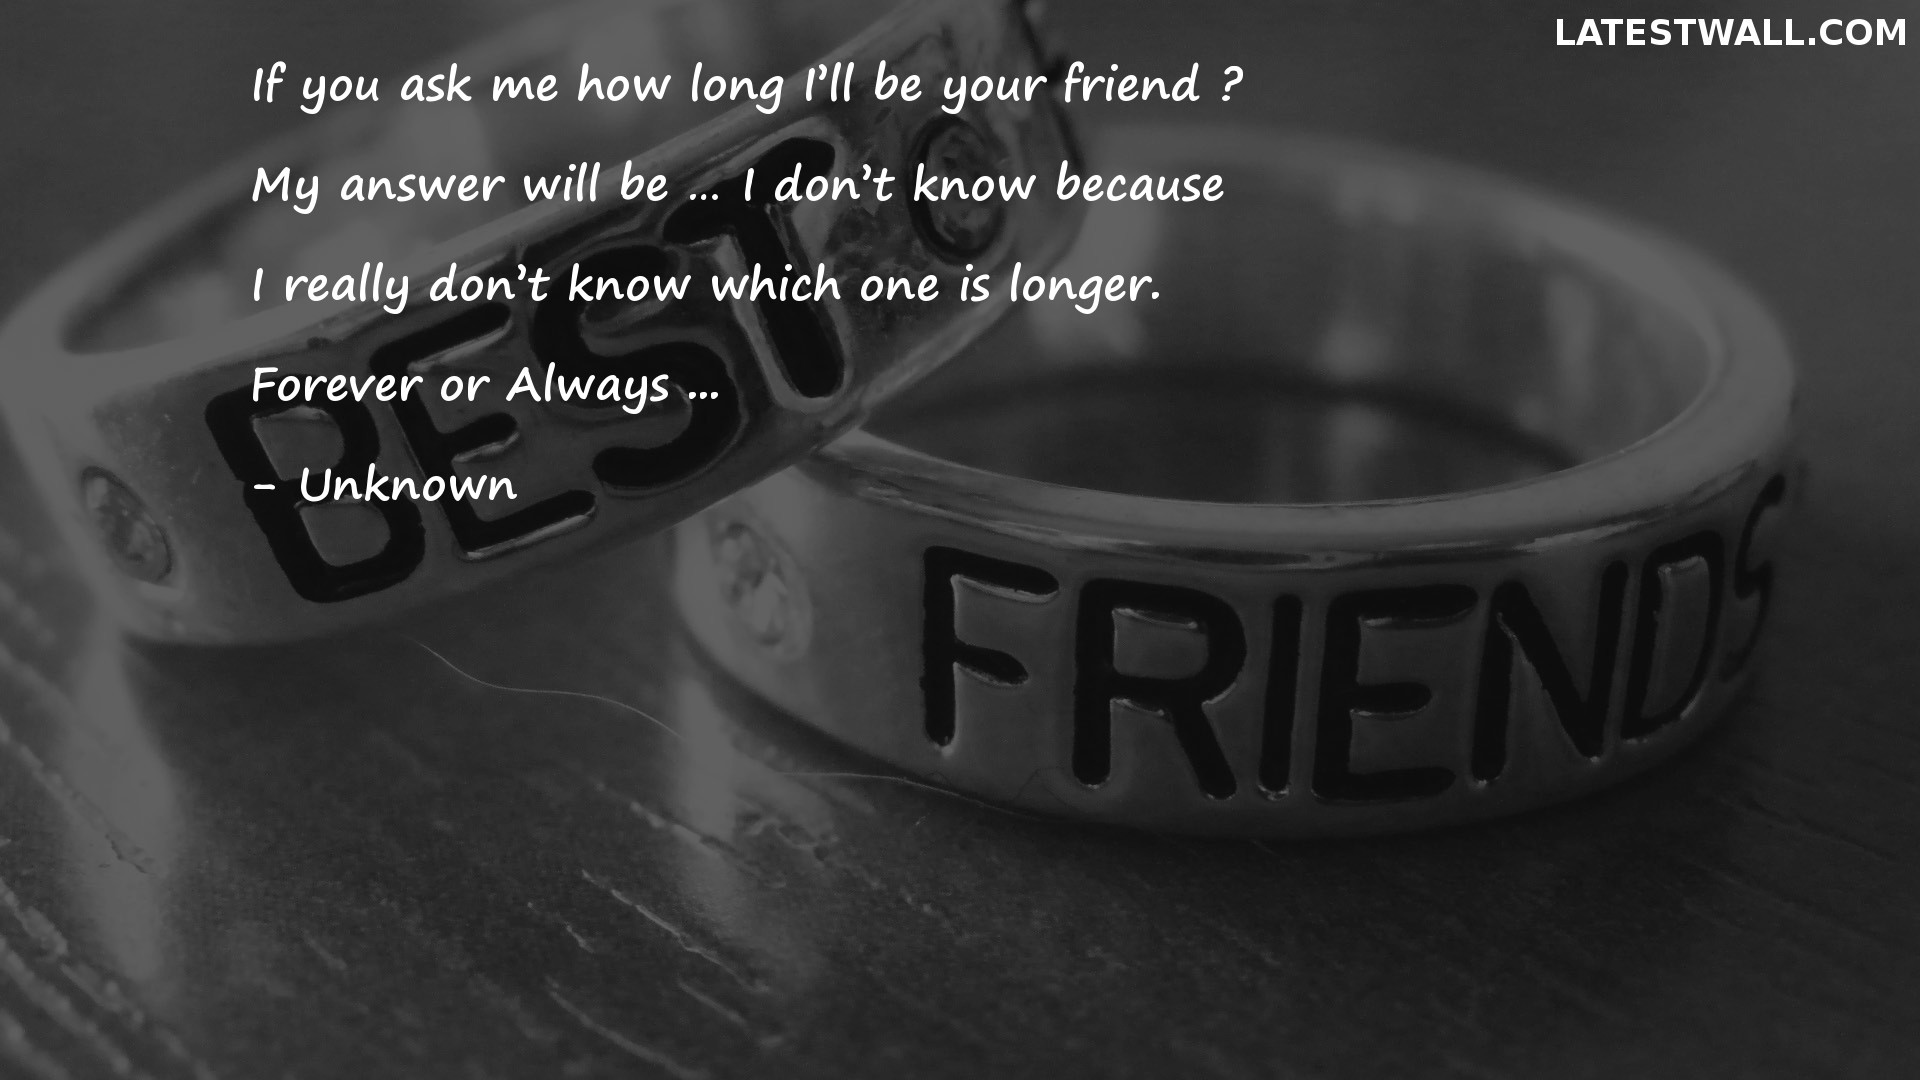 If you ask me how long I'll be your friend